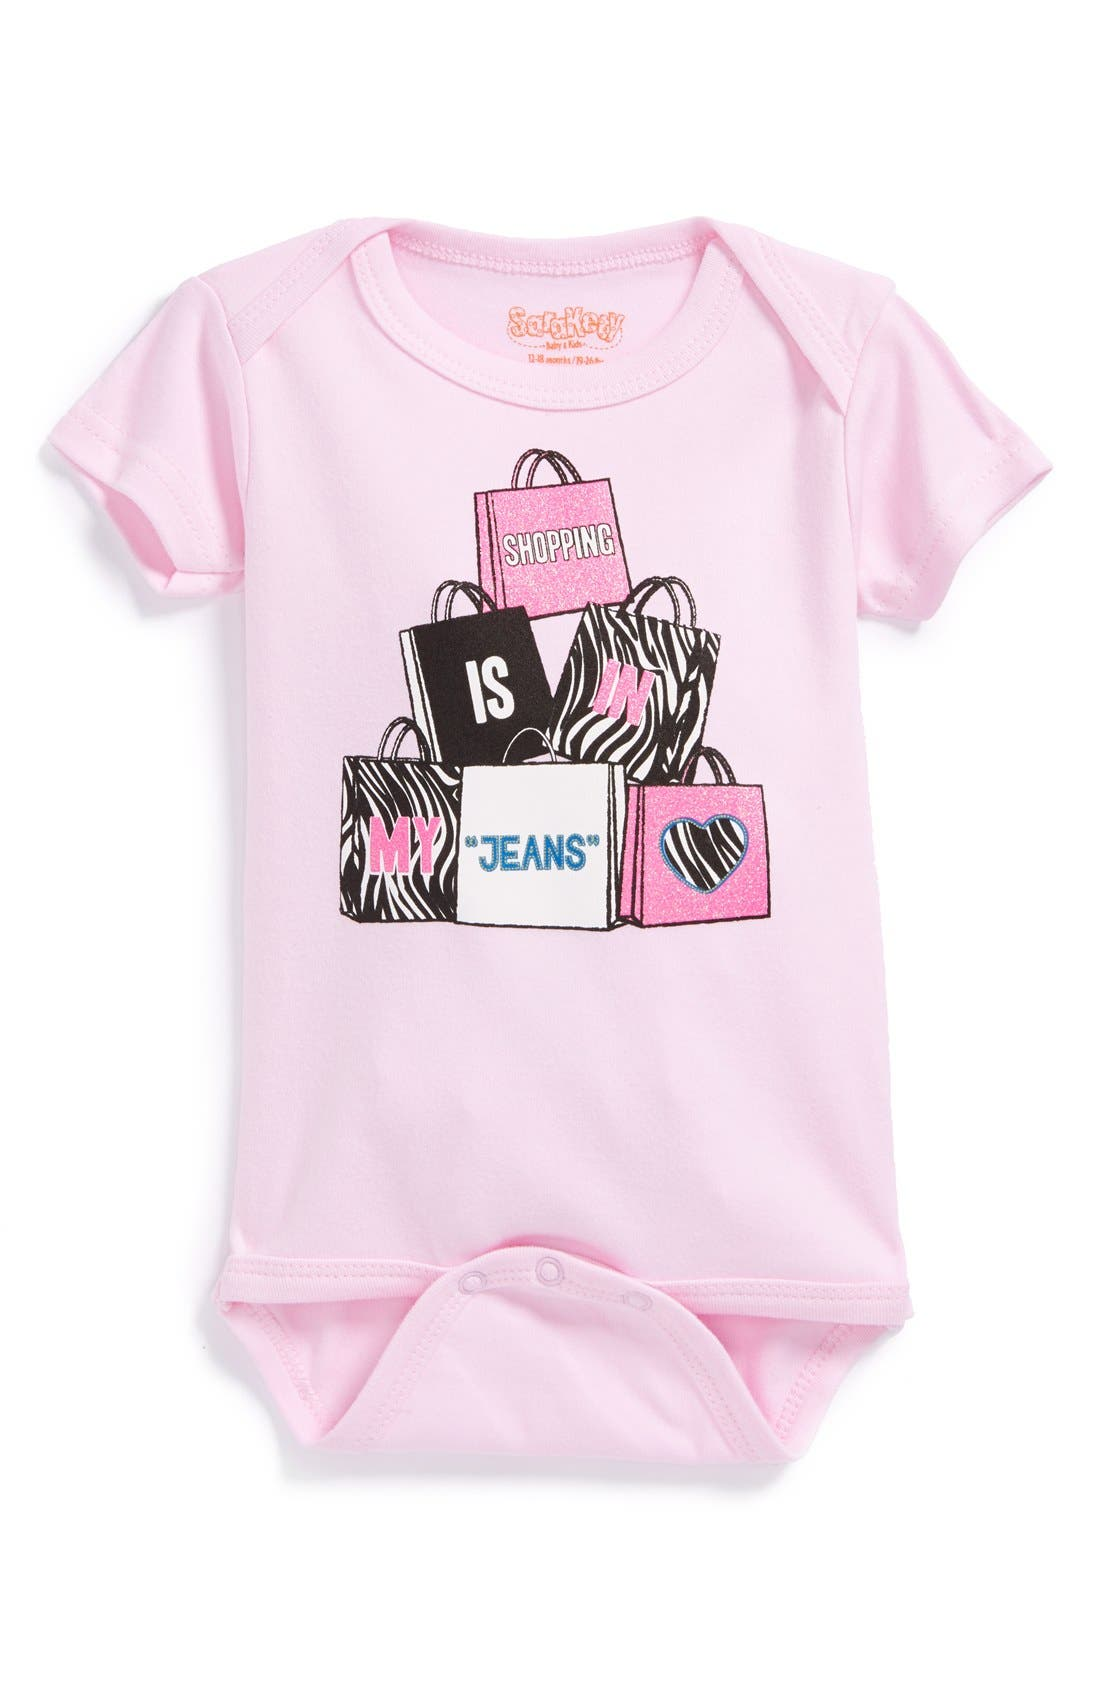 Alternate Image 1 Selected - Sara Kety Baby & Kids 'Shopping Jeans' Short Sleeve Bodysuit (Baby Girls)